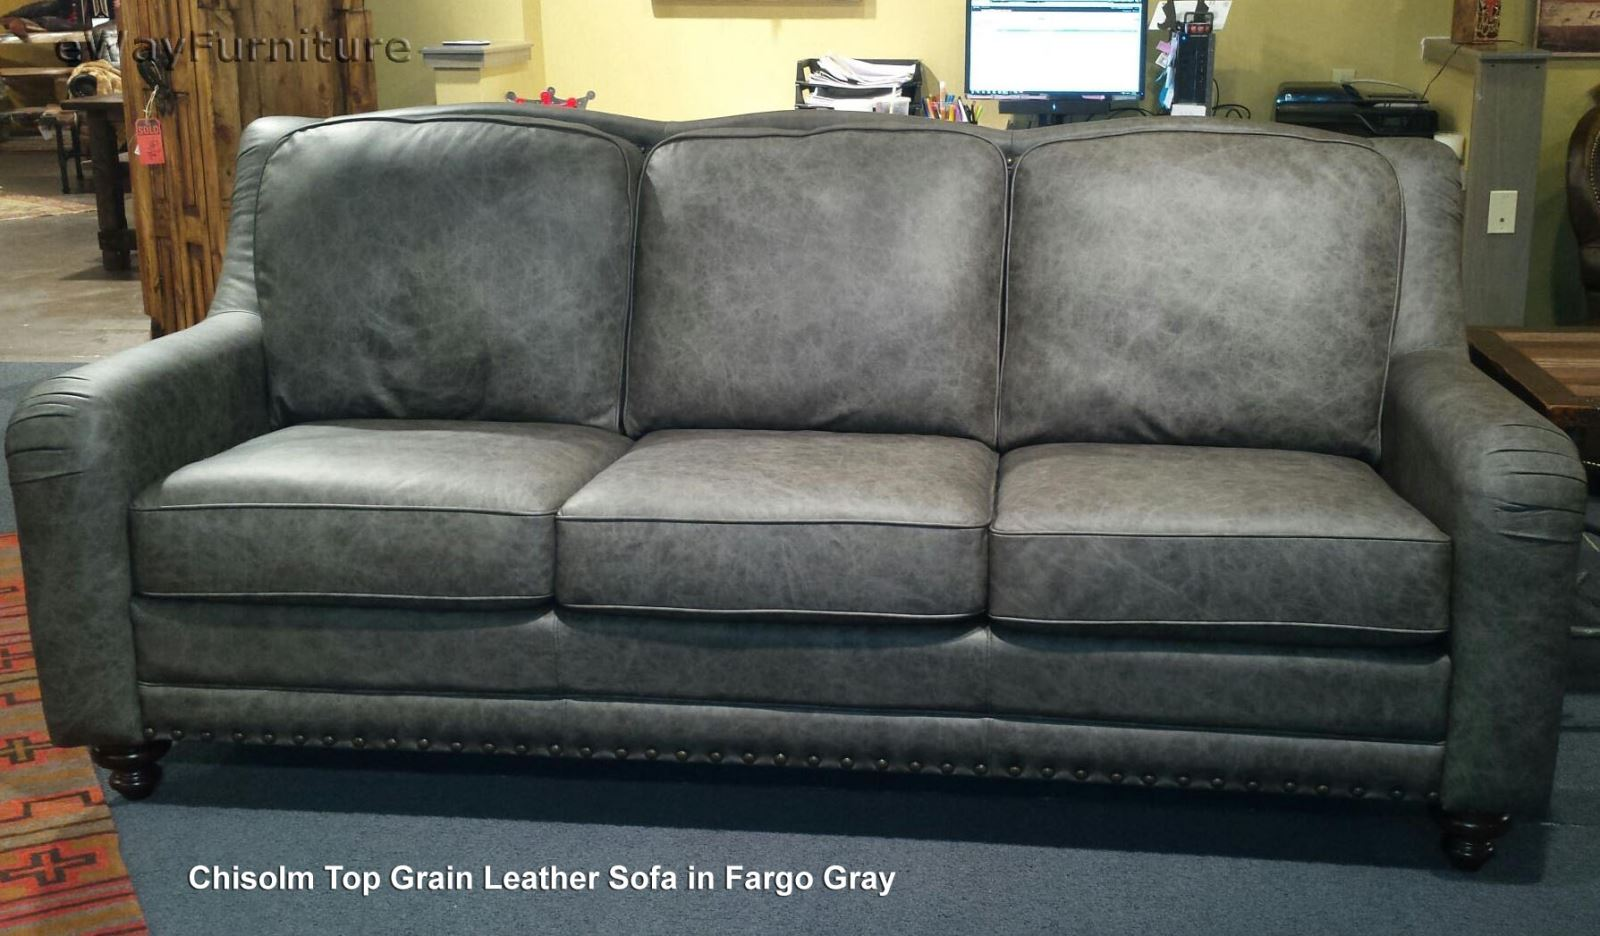 Chisolm top grain leather sofa in fargo gray made in usa Home furniture usa nj